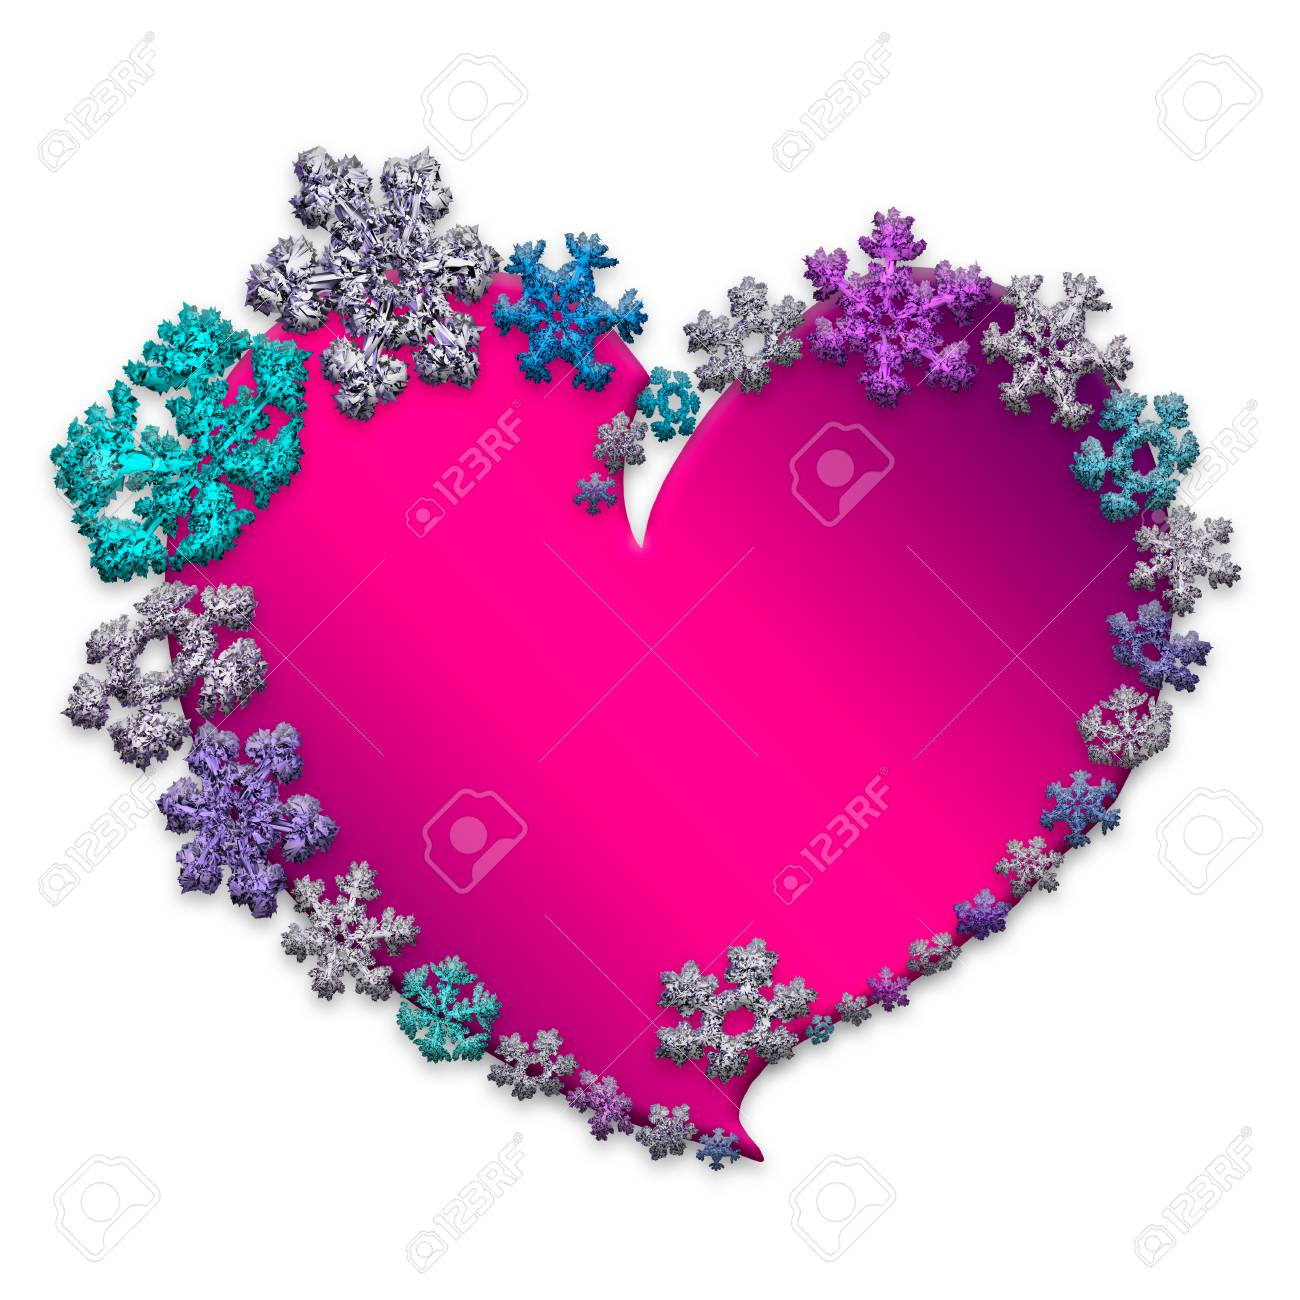 92819227 beautiful pink heart made with different snowflakes on white background symbol of love and valentine